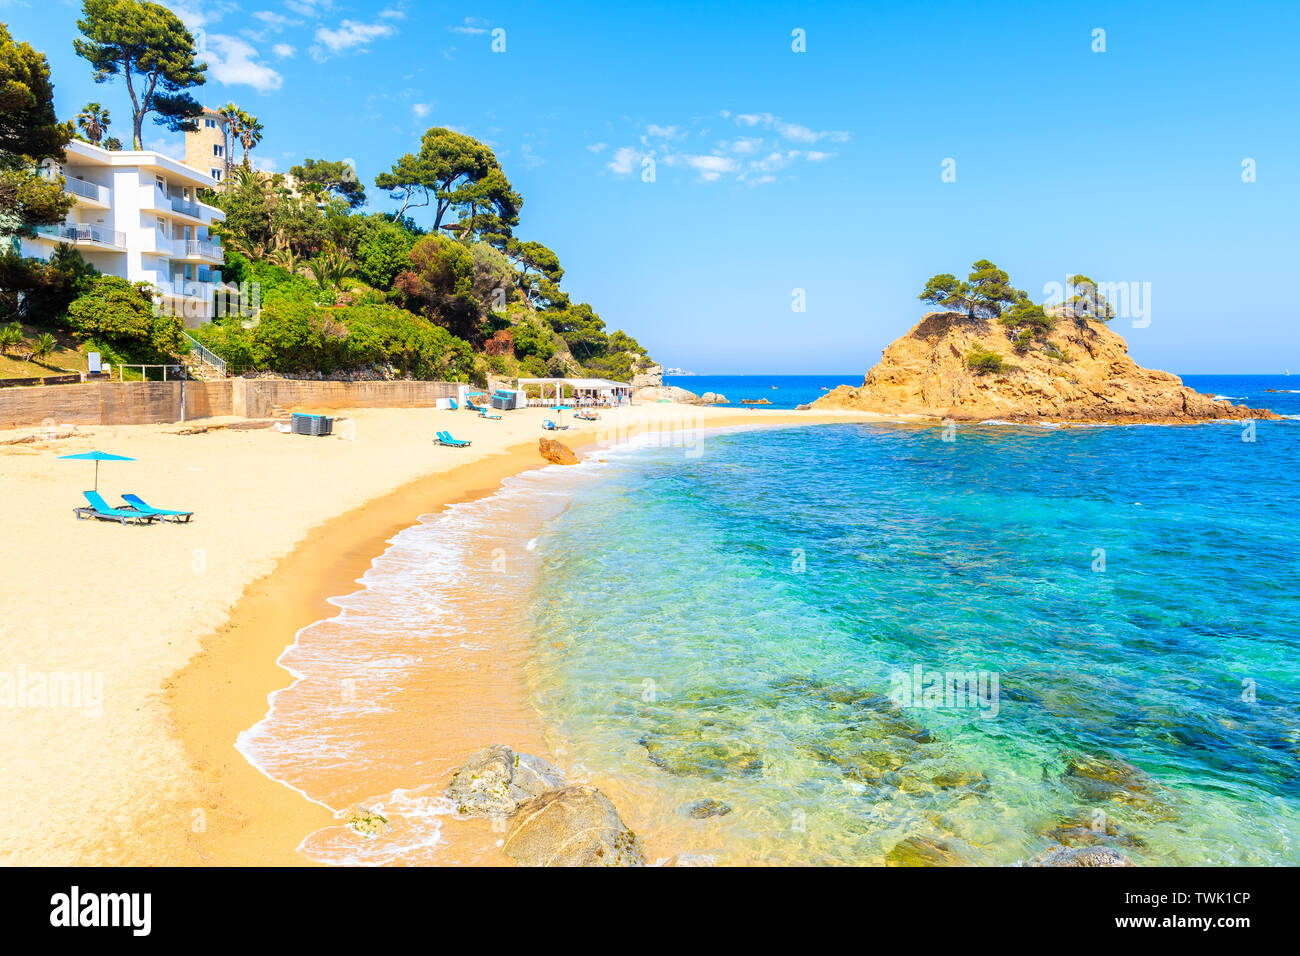 Stunning sandy beach at Cap Roig, Costa Brava, Spain Stock Photo